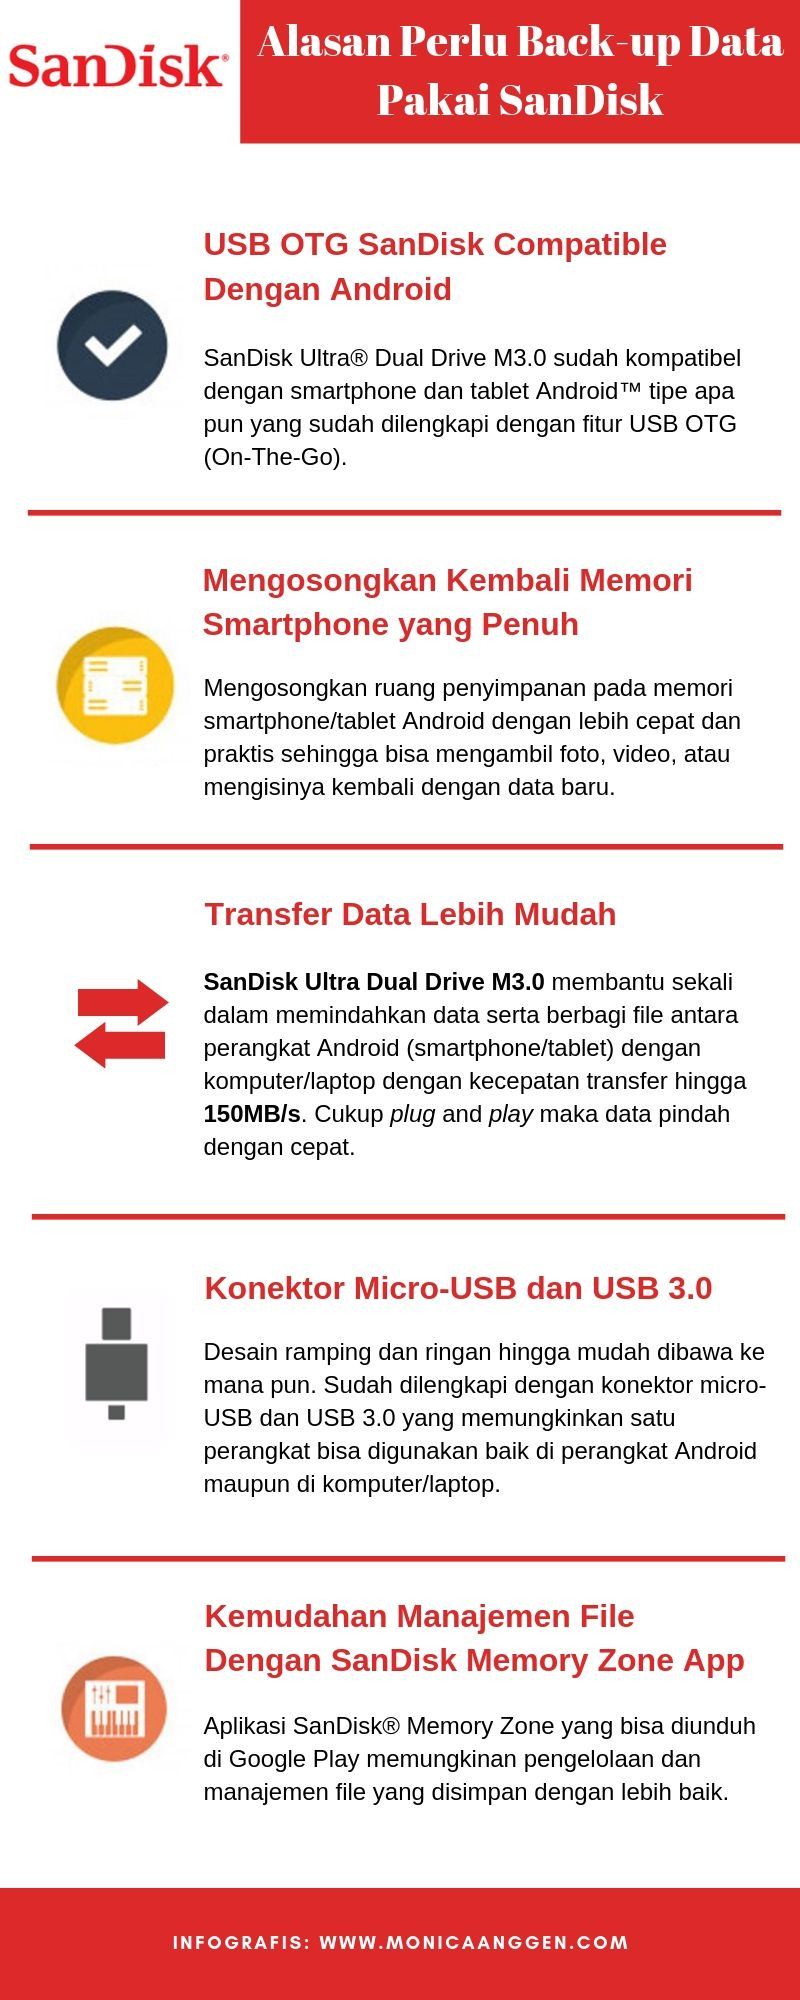 USB OTG SanDisk Solusi Backup Data Aman